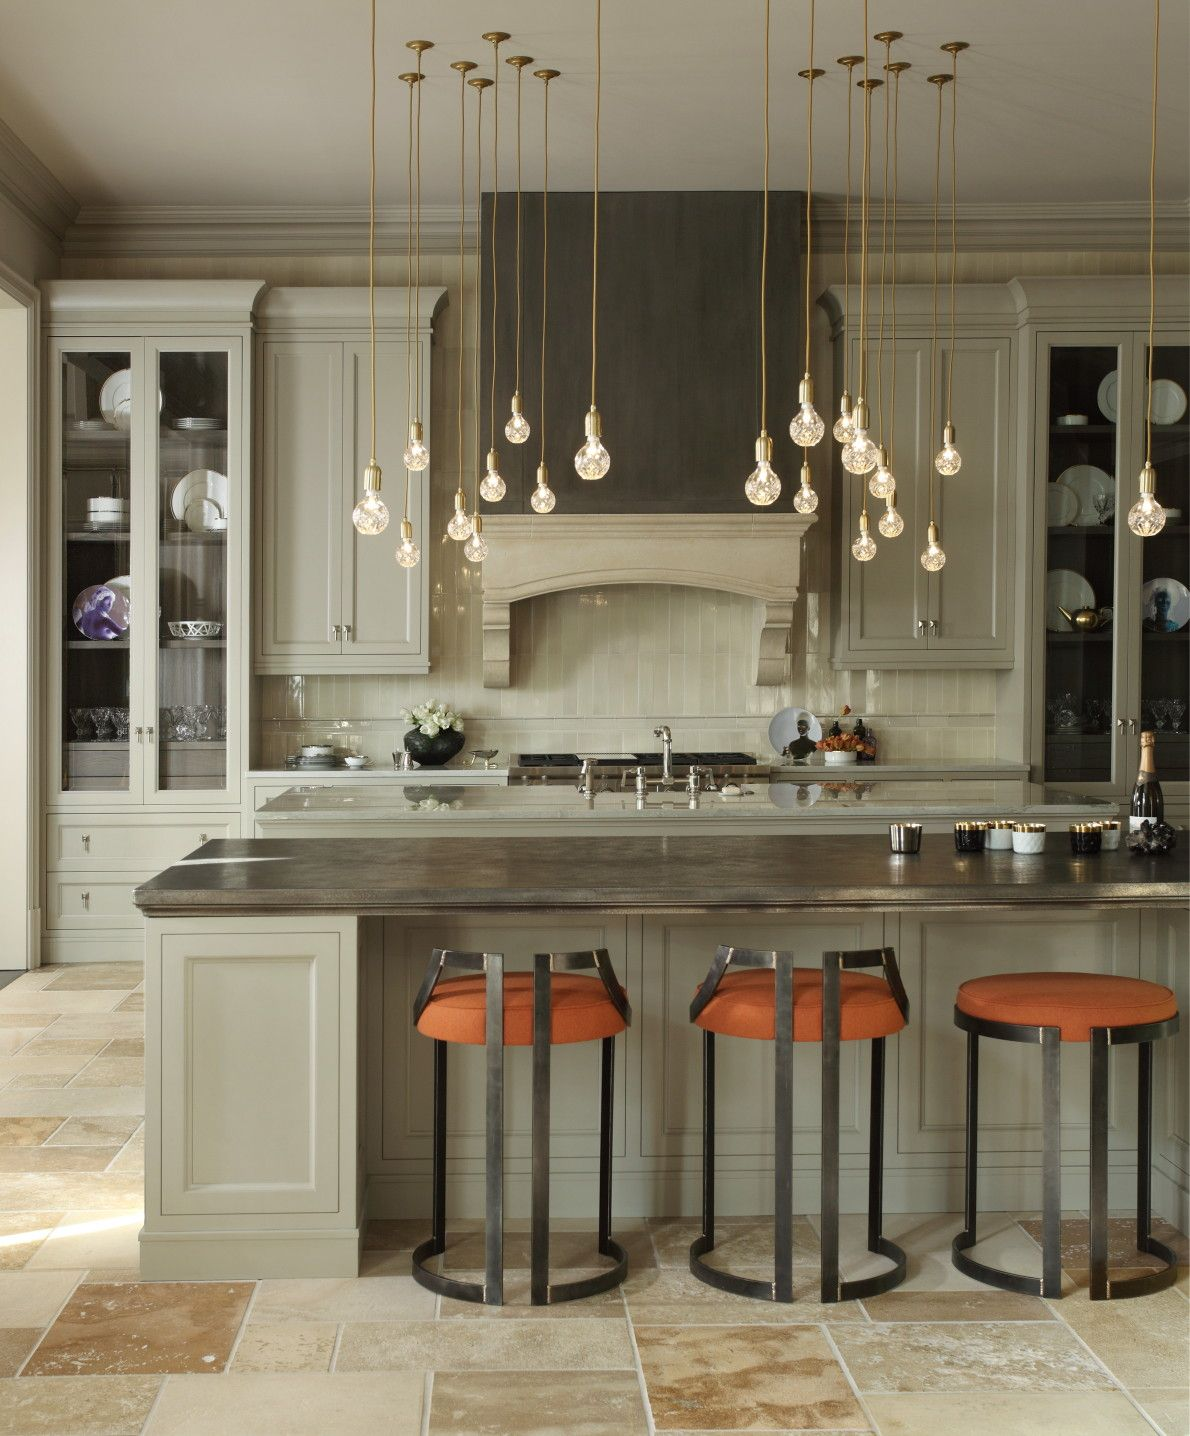 Karpaty Cabinets, Inc Custom Kitchen Cabinets Atlanta Georgia